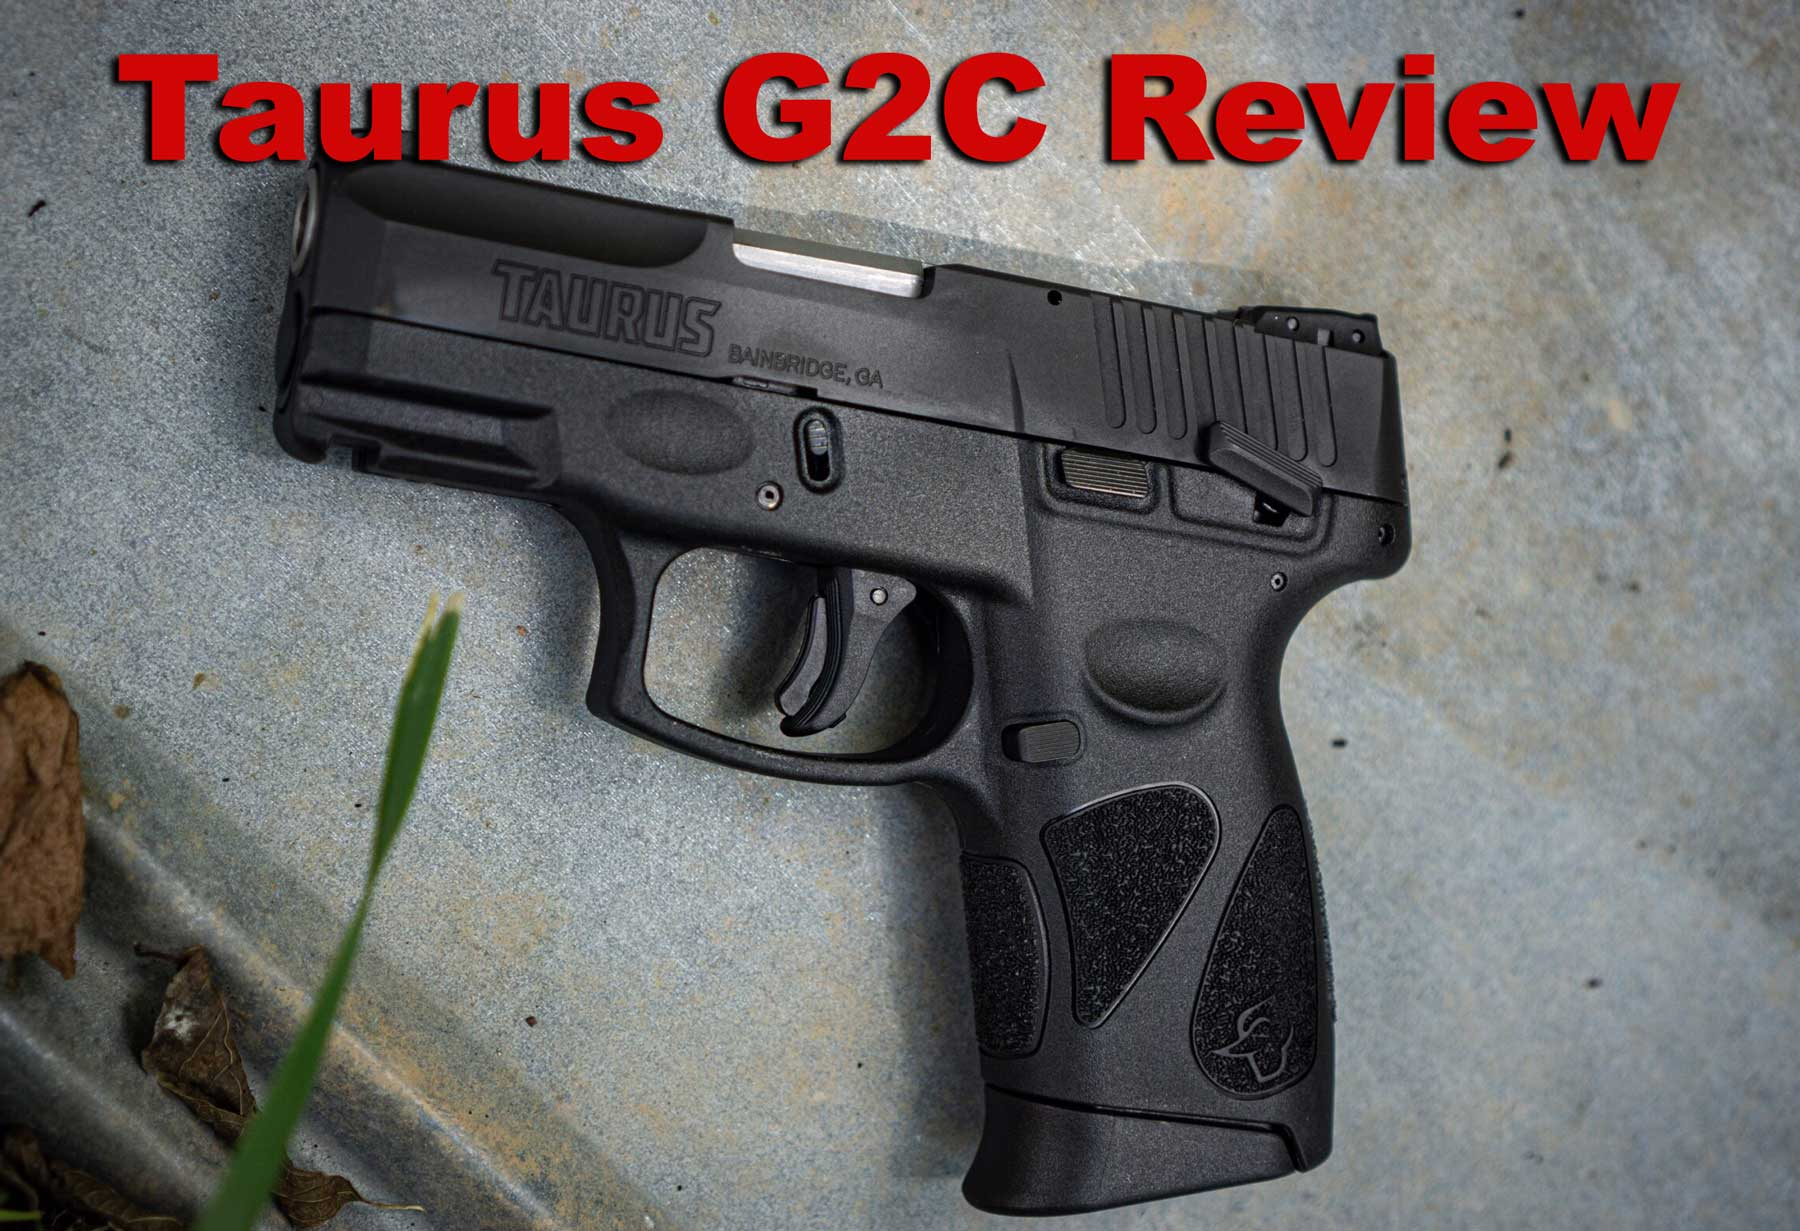 Taurus G2C review gun at the range